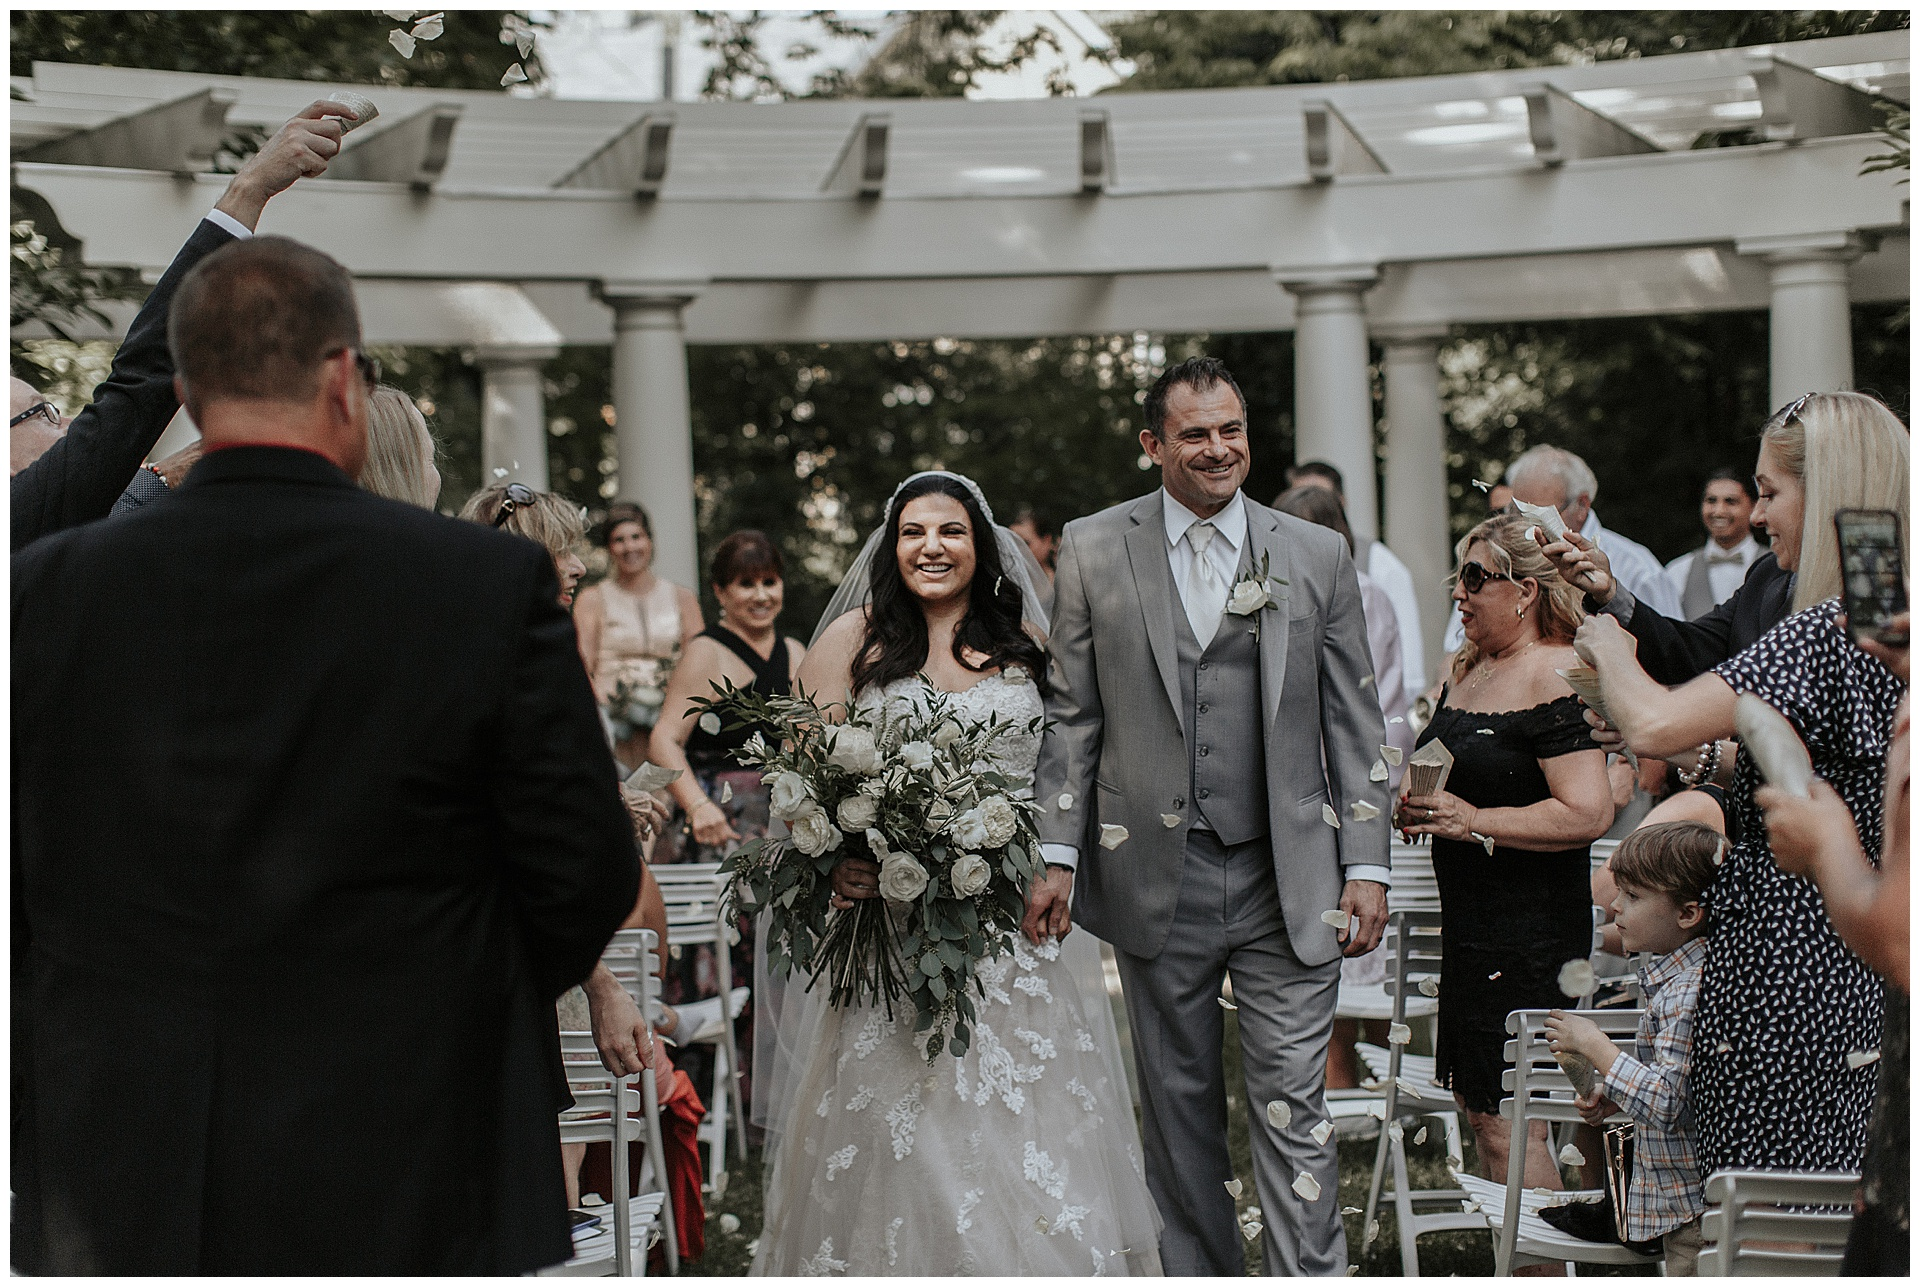 kelton house wedding columbus ohio_mia dimare photo31.jpg